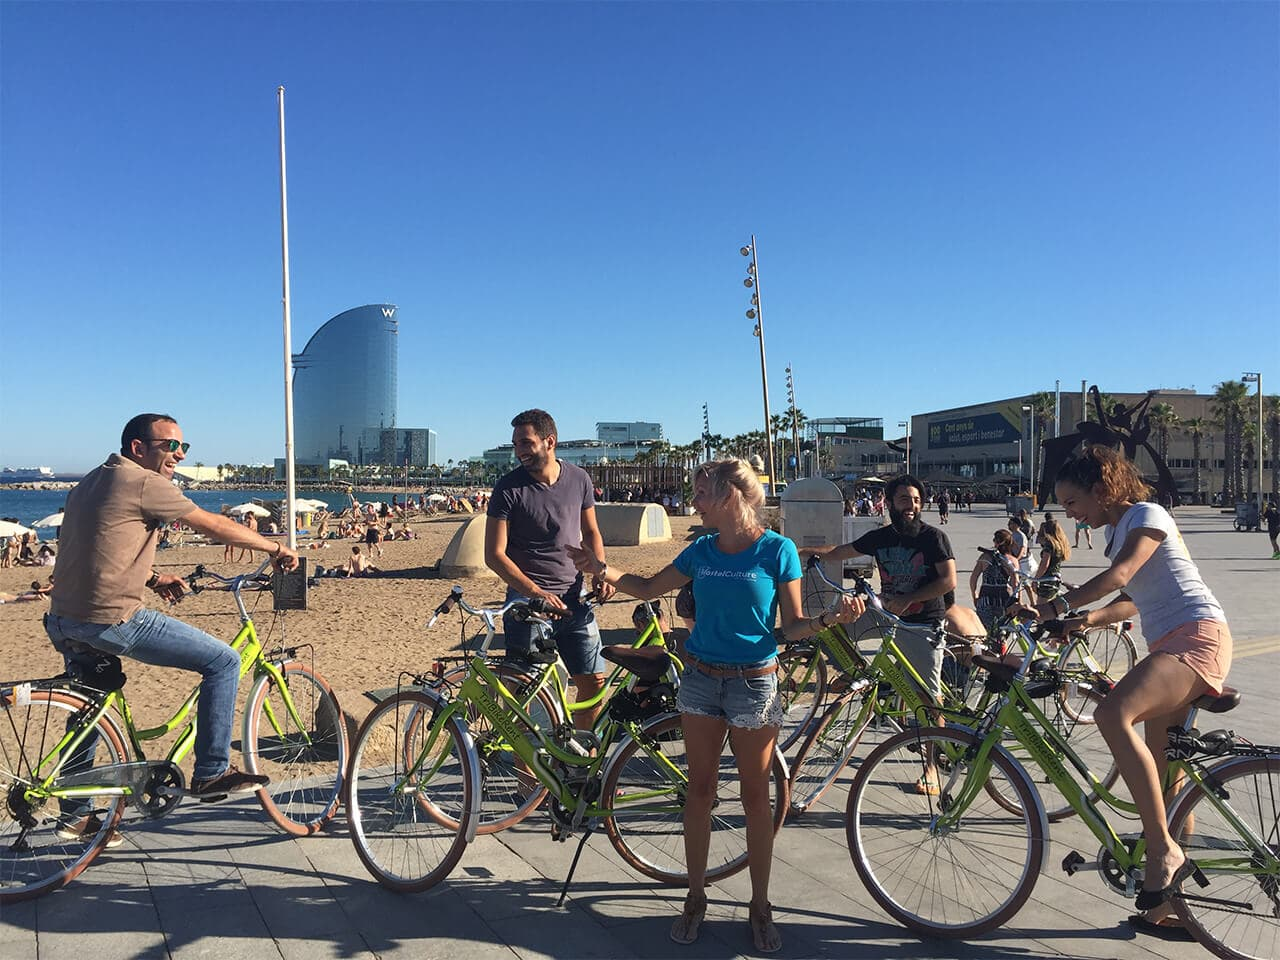 Barcelona bike tour guide shares her knowledge with her group